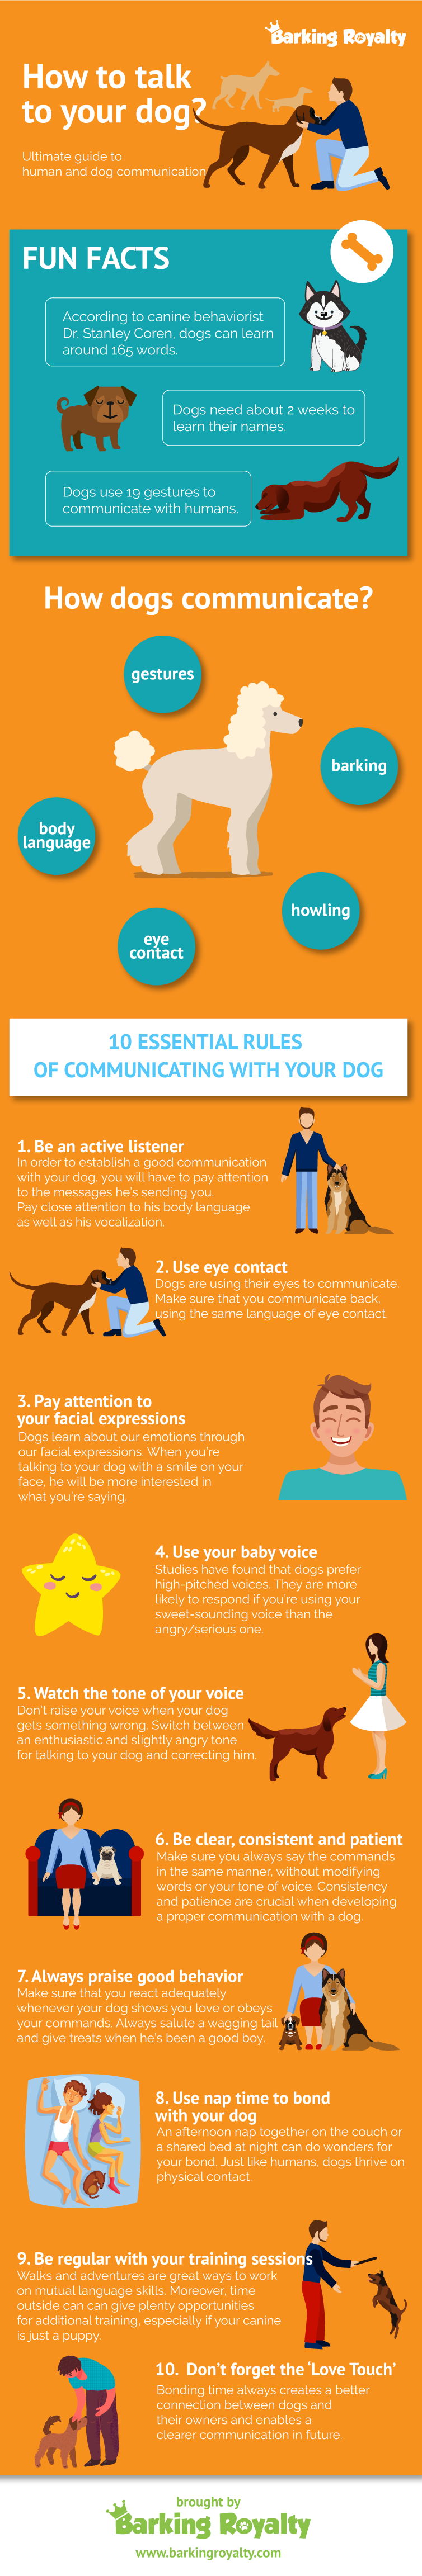 Dog And Human Communication – How To Talk To Your Dog Properly?